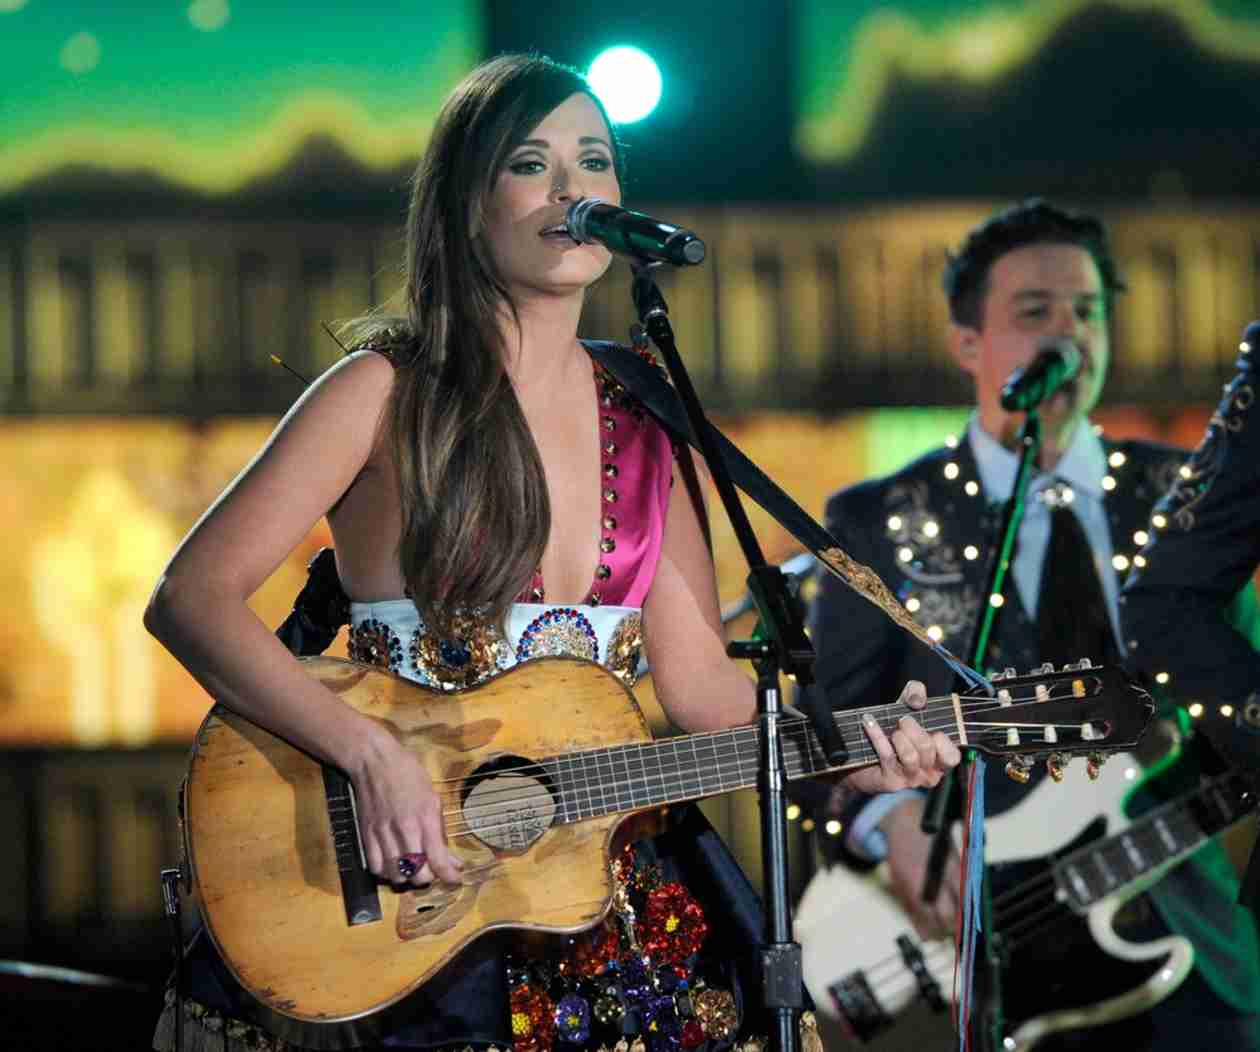 Who Is Kacey Musgraves? 5 Things to Know About the Grammy-Winning Country Star!